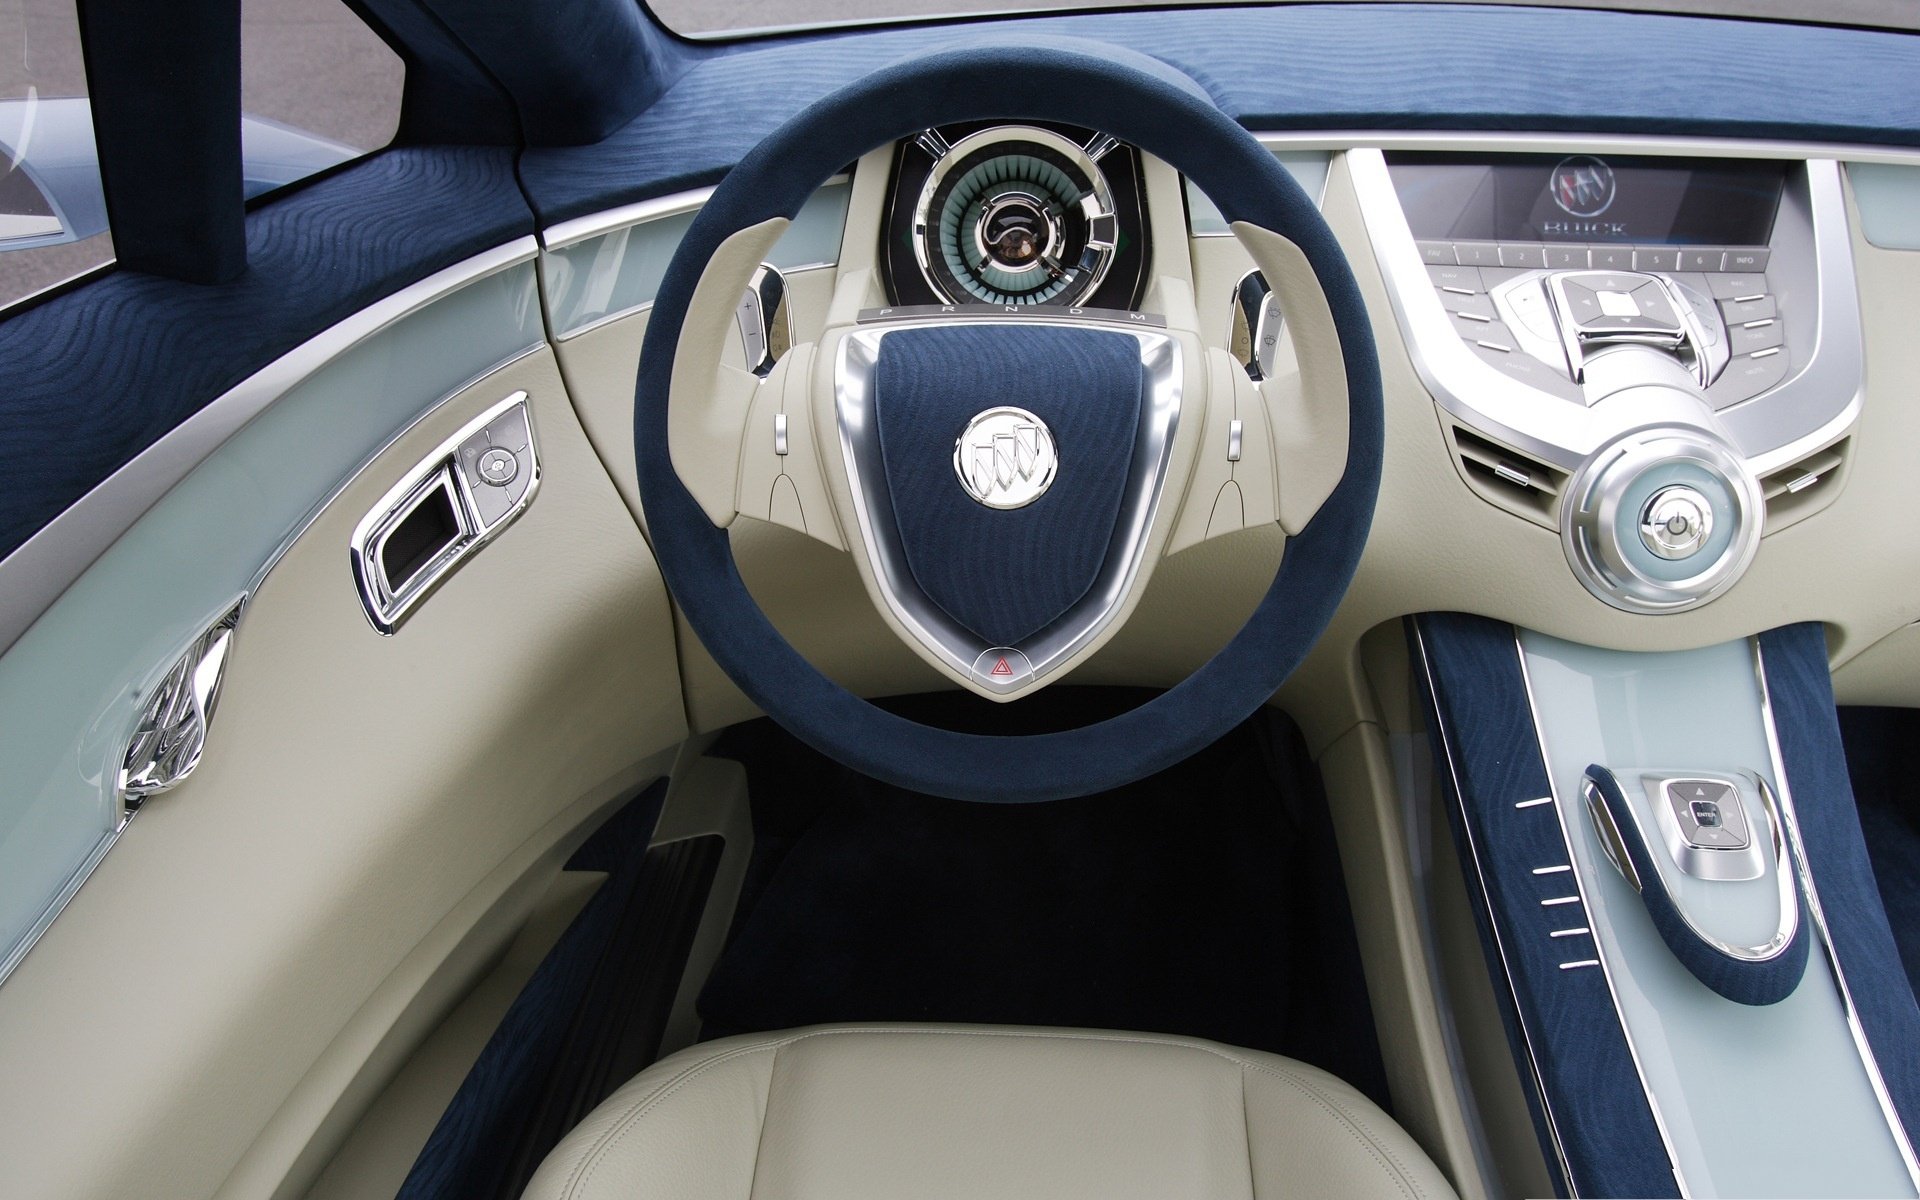 Lincoln Town Car 2015 Wallpapers Nice Car As Background Buick Car Interior Blue